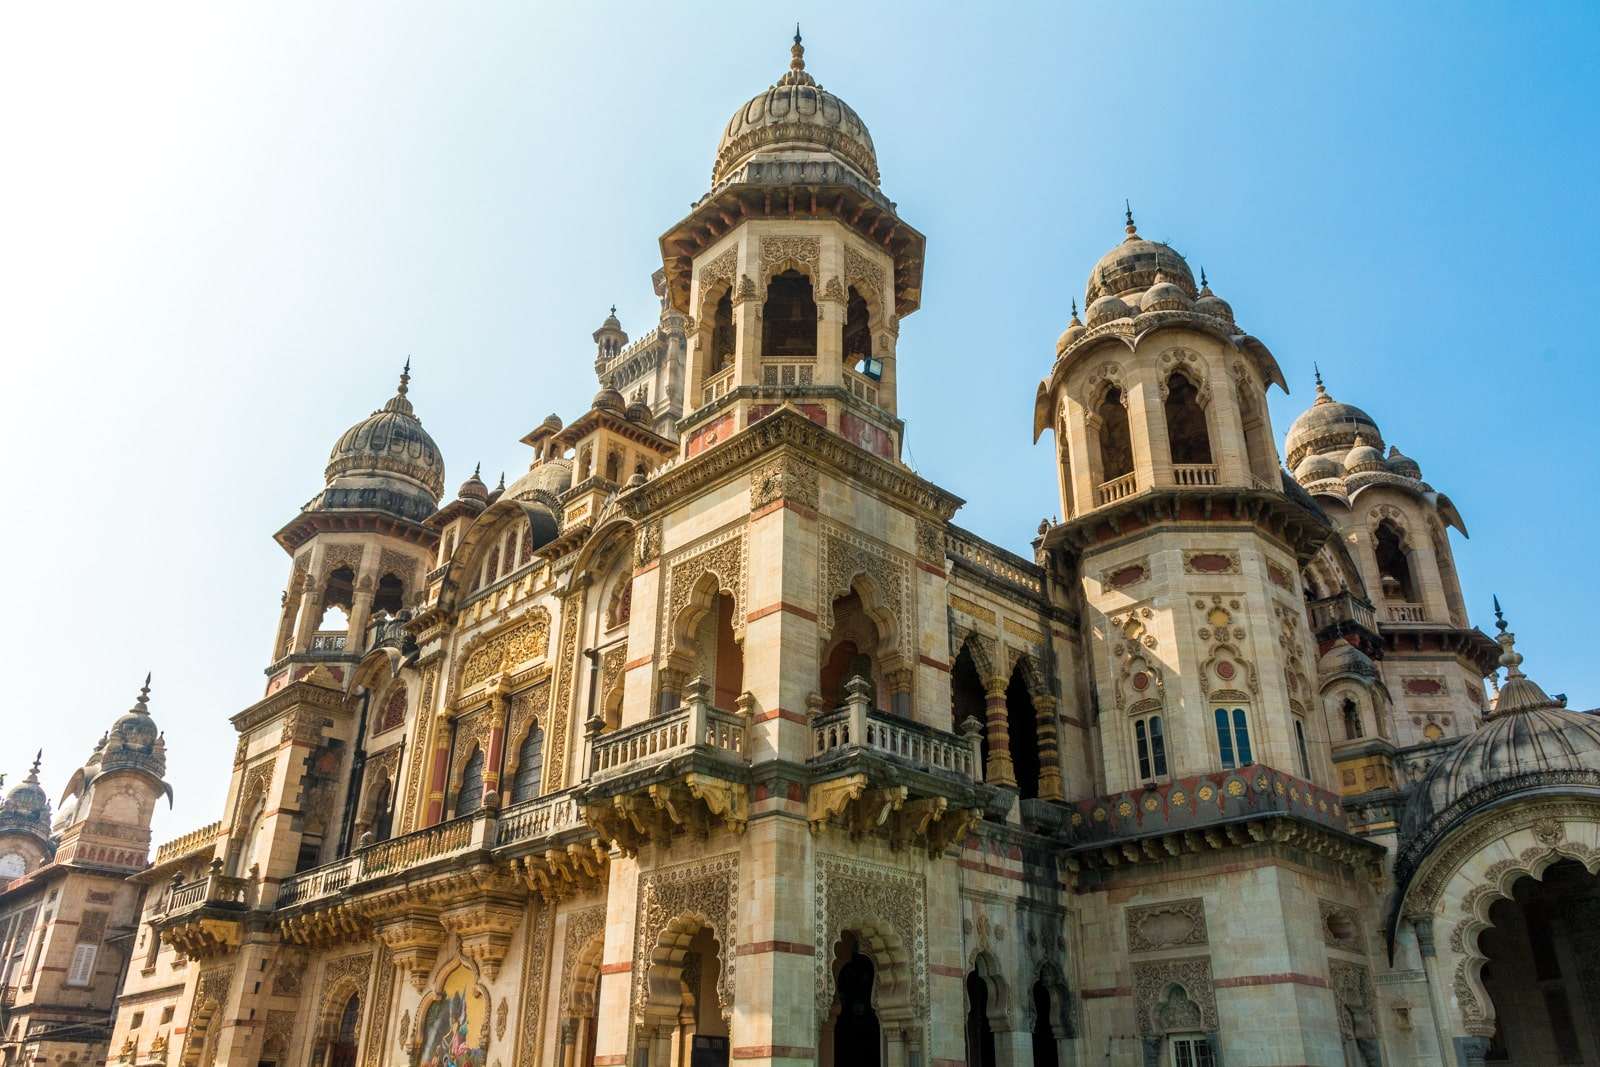 Why we fell in love with India - Laxmi Vilas palace in Vadodara (Baroda) Gujarat state, India - Lost With Purpose travel blog